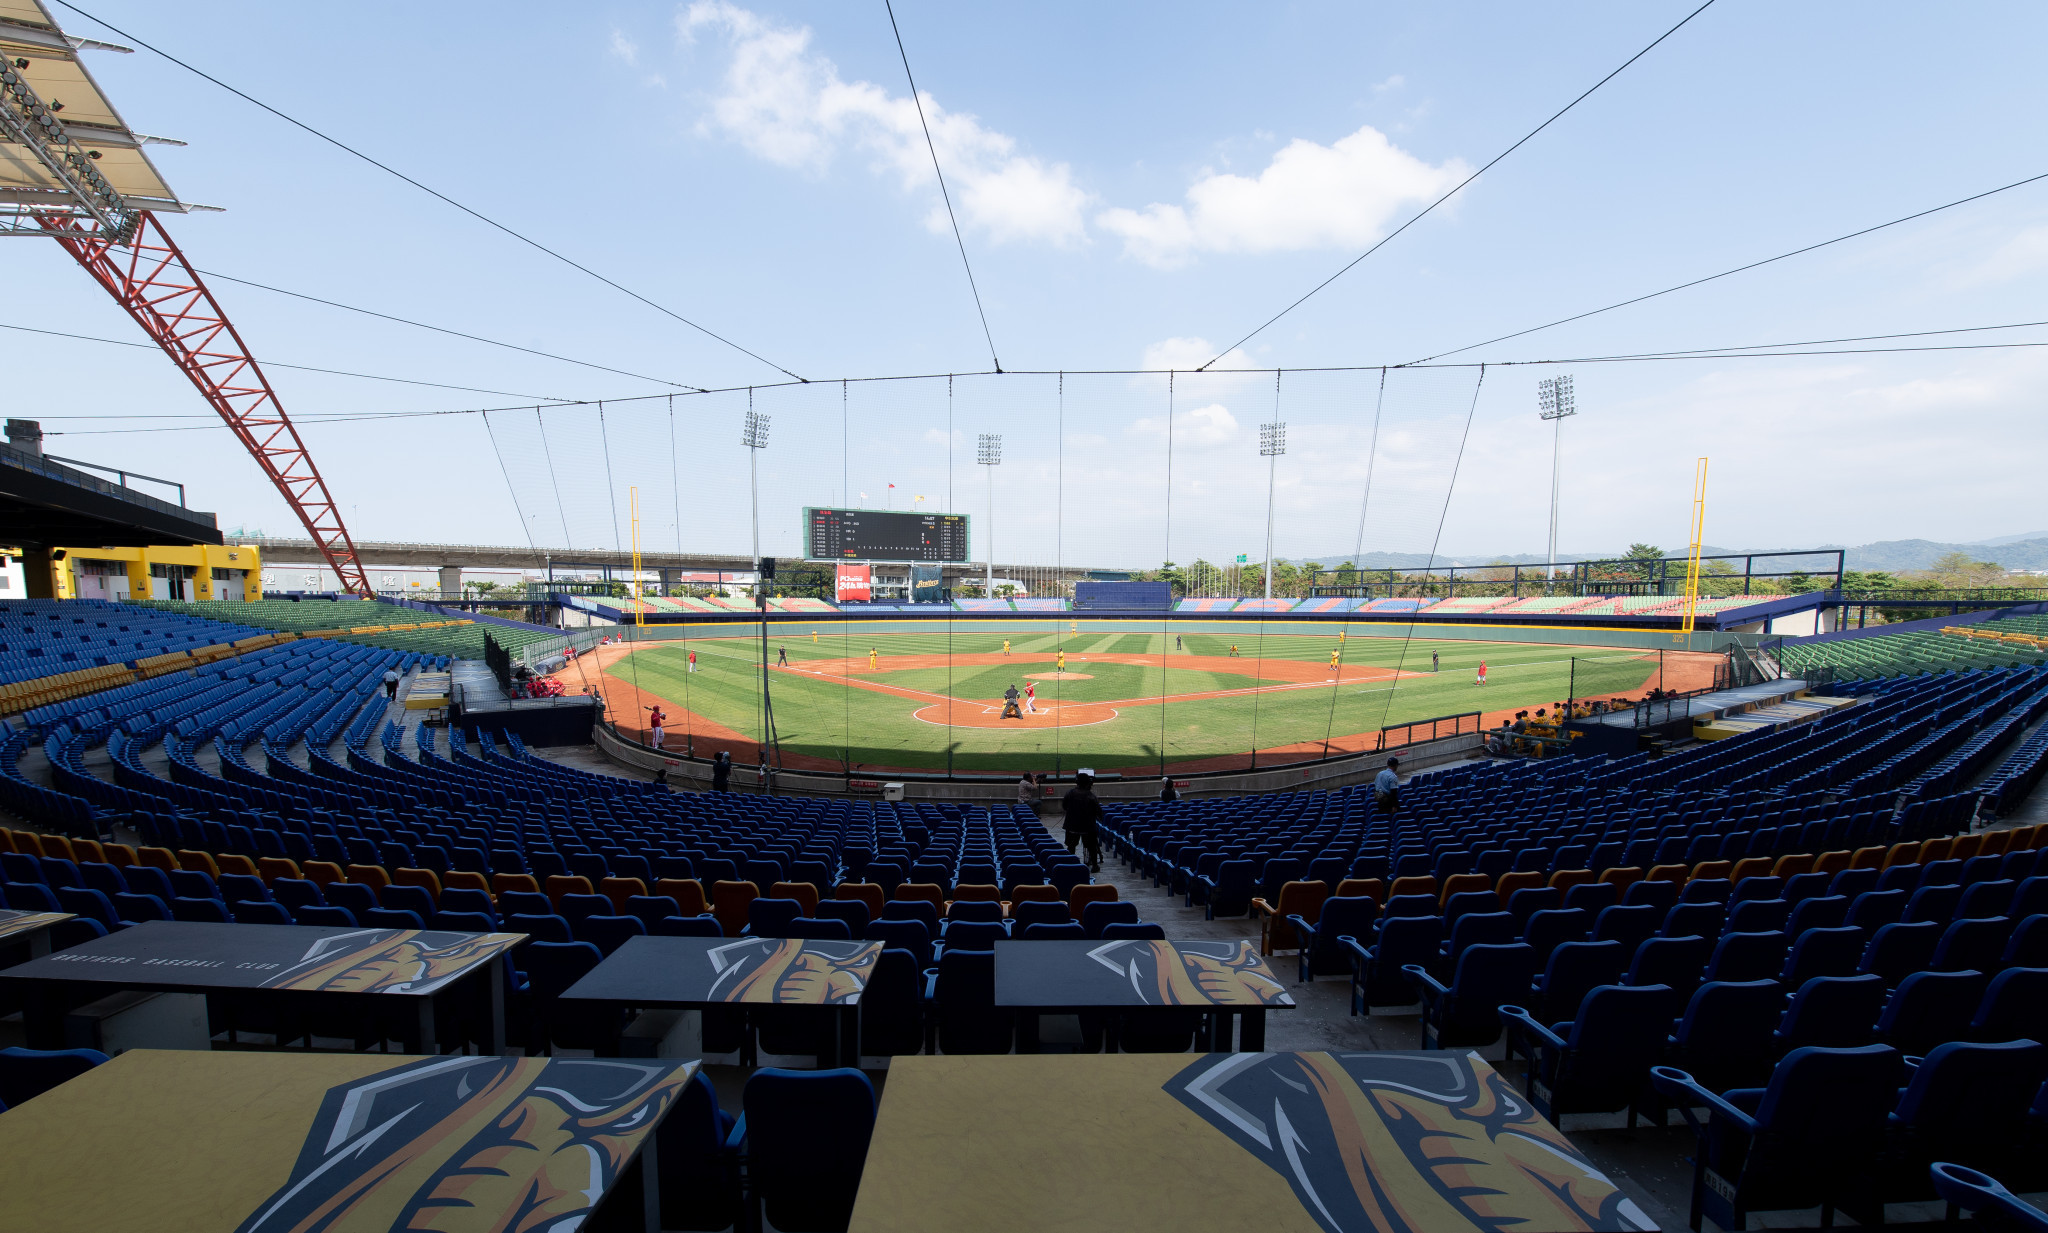 The final qualifier has been moved from Taiwan's Taichung Intercontinental Baseball Stadium ©Getty Images